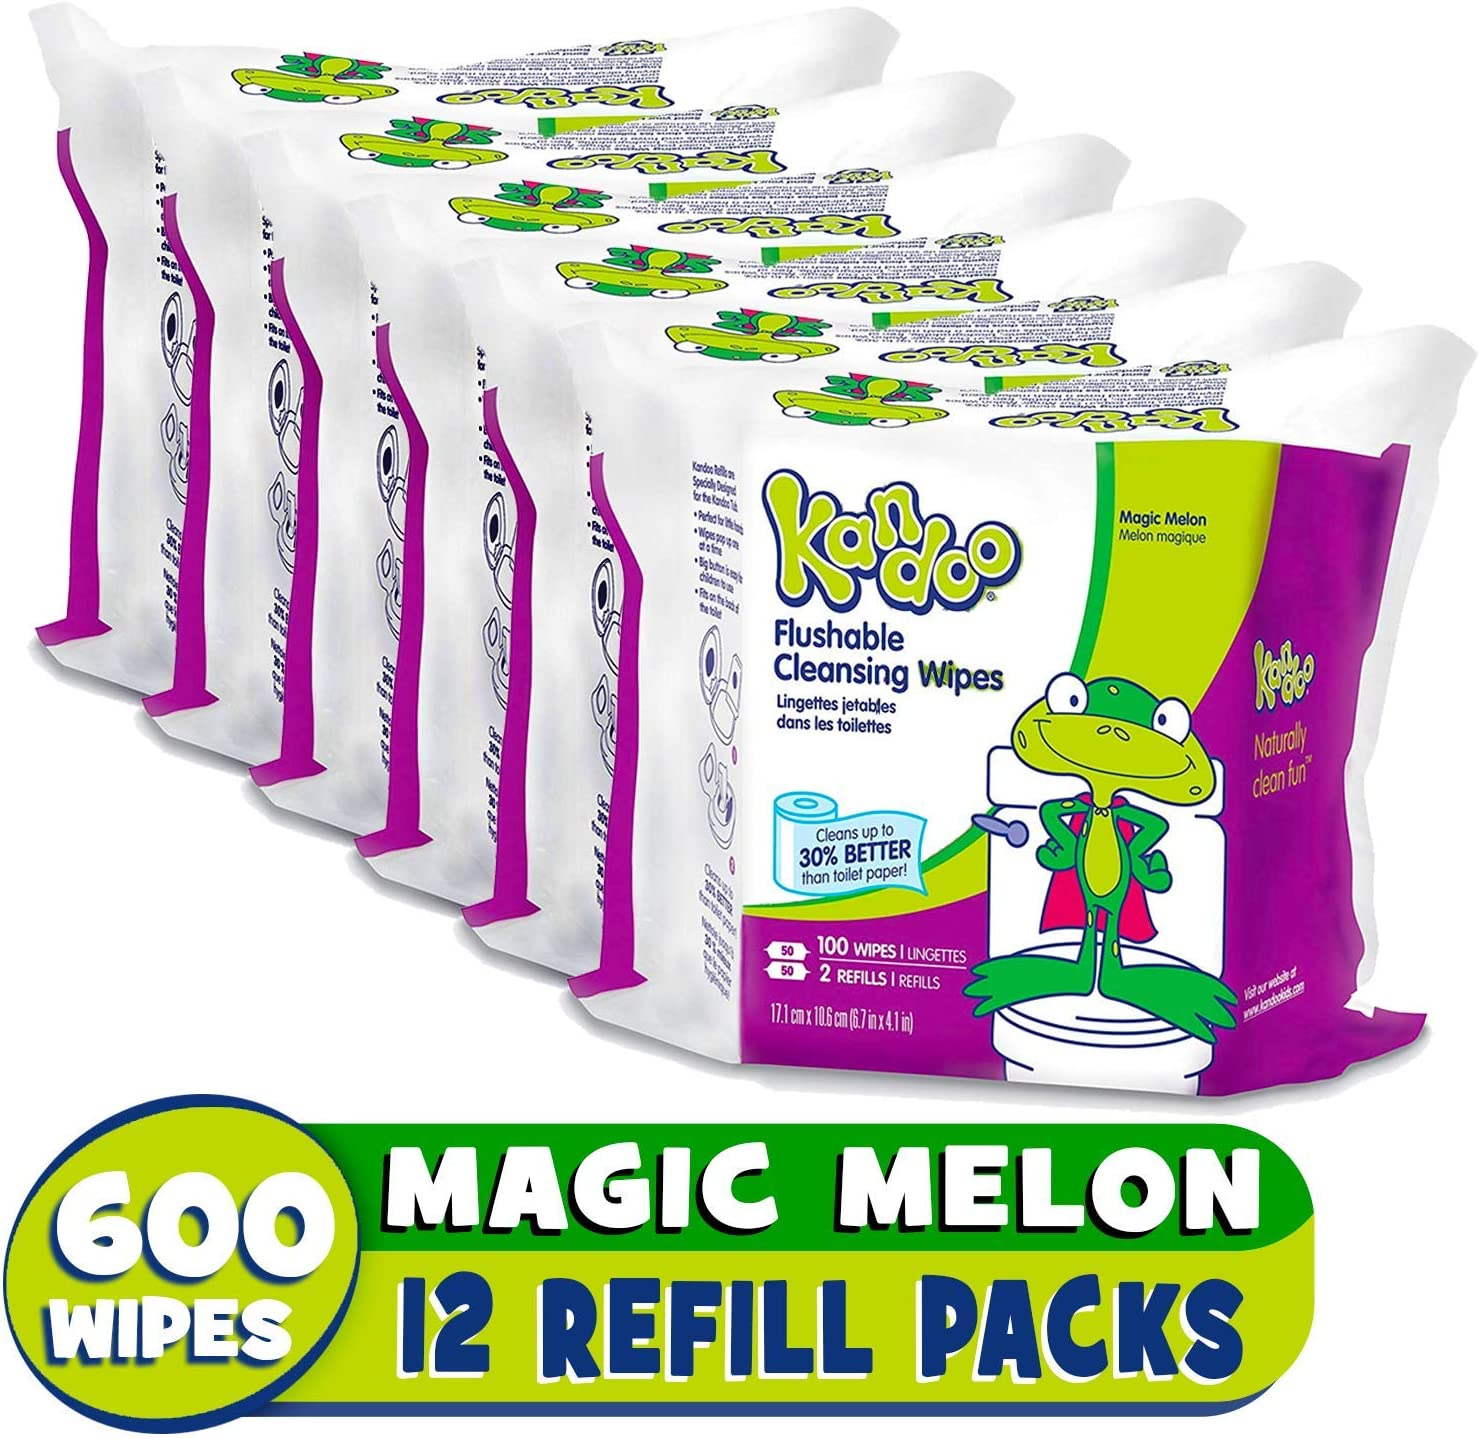 B000F0Z07I Flushable Wipes for Babies and Kids, Magic Melon by Kandoo, Potty Training Wet Cleansing Cloths Refills, 100 Ct, Pack of 6 (Packaging May Vary) 81VWqmy1oFL